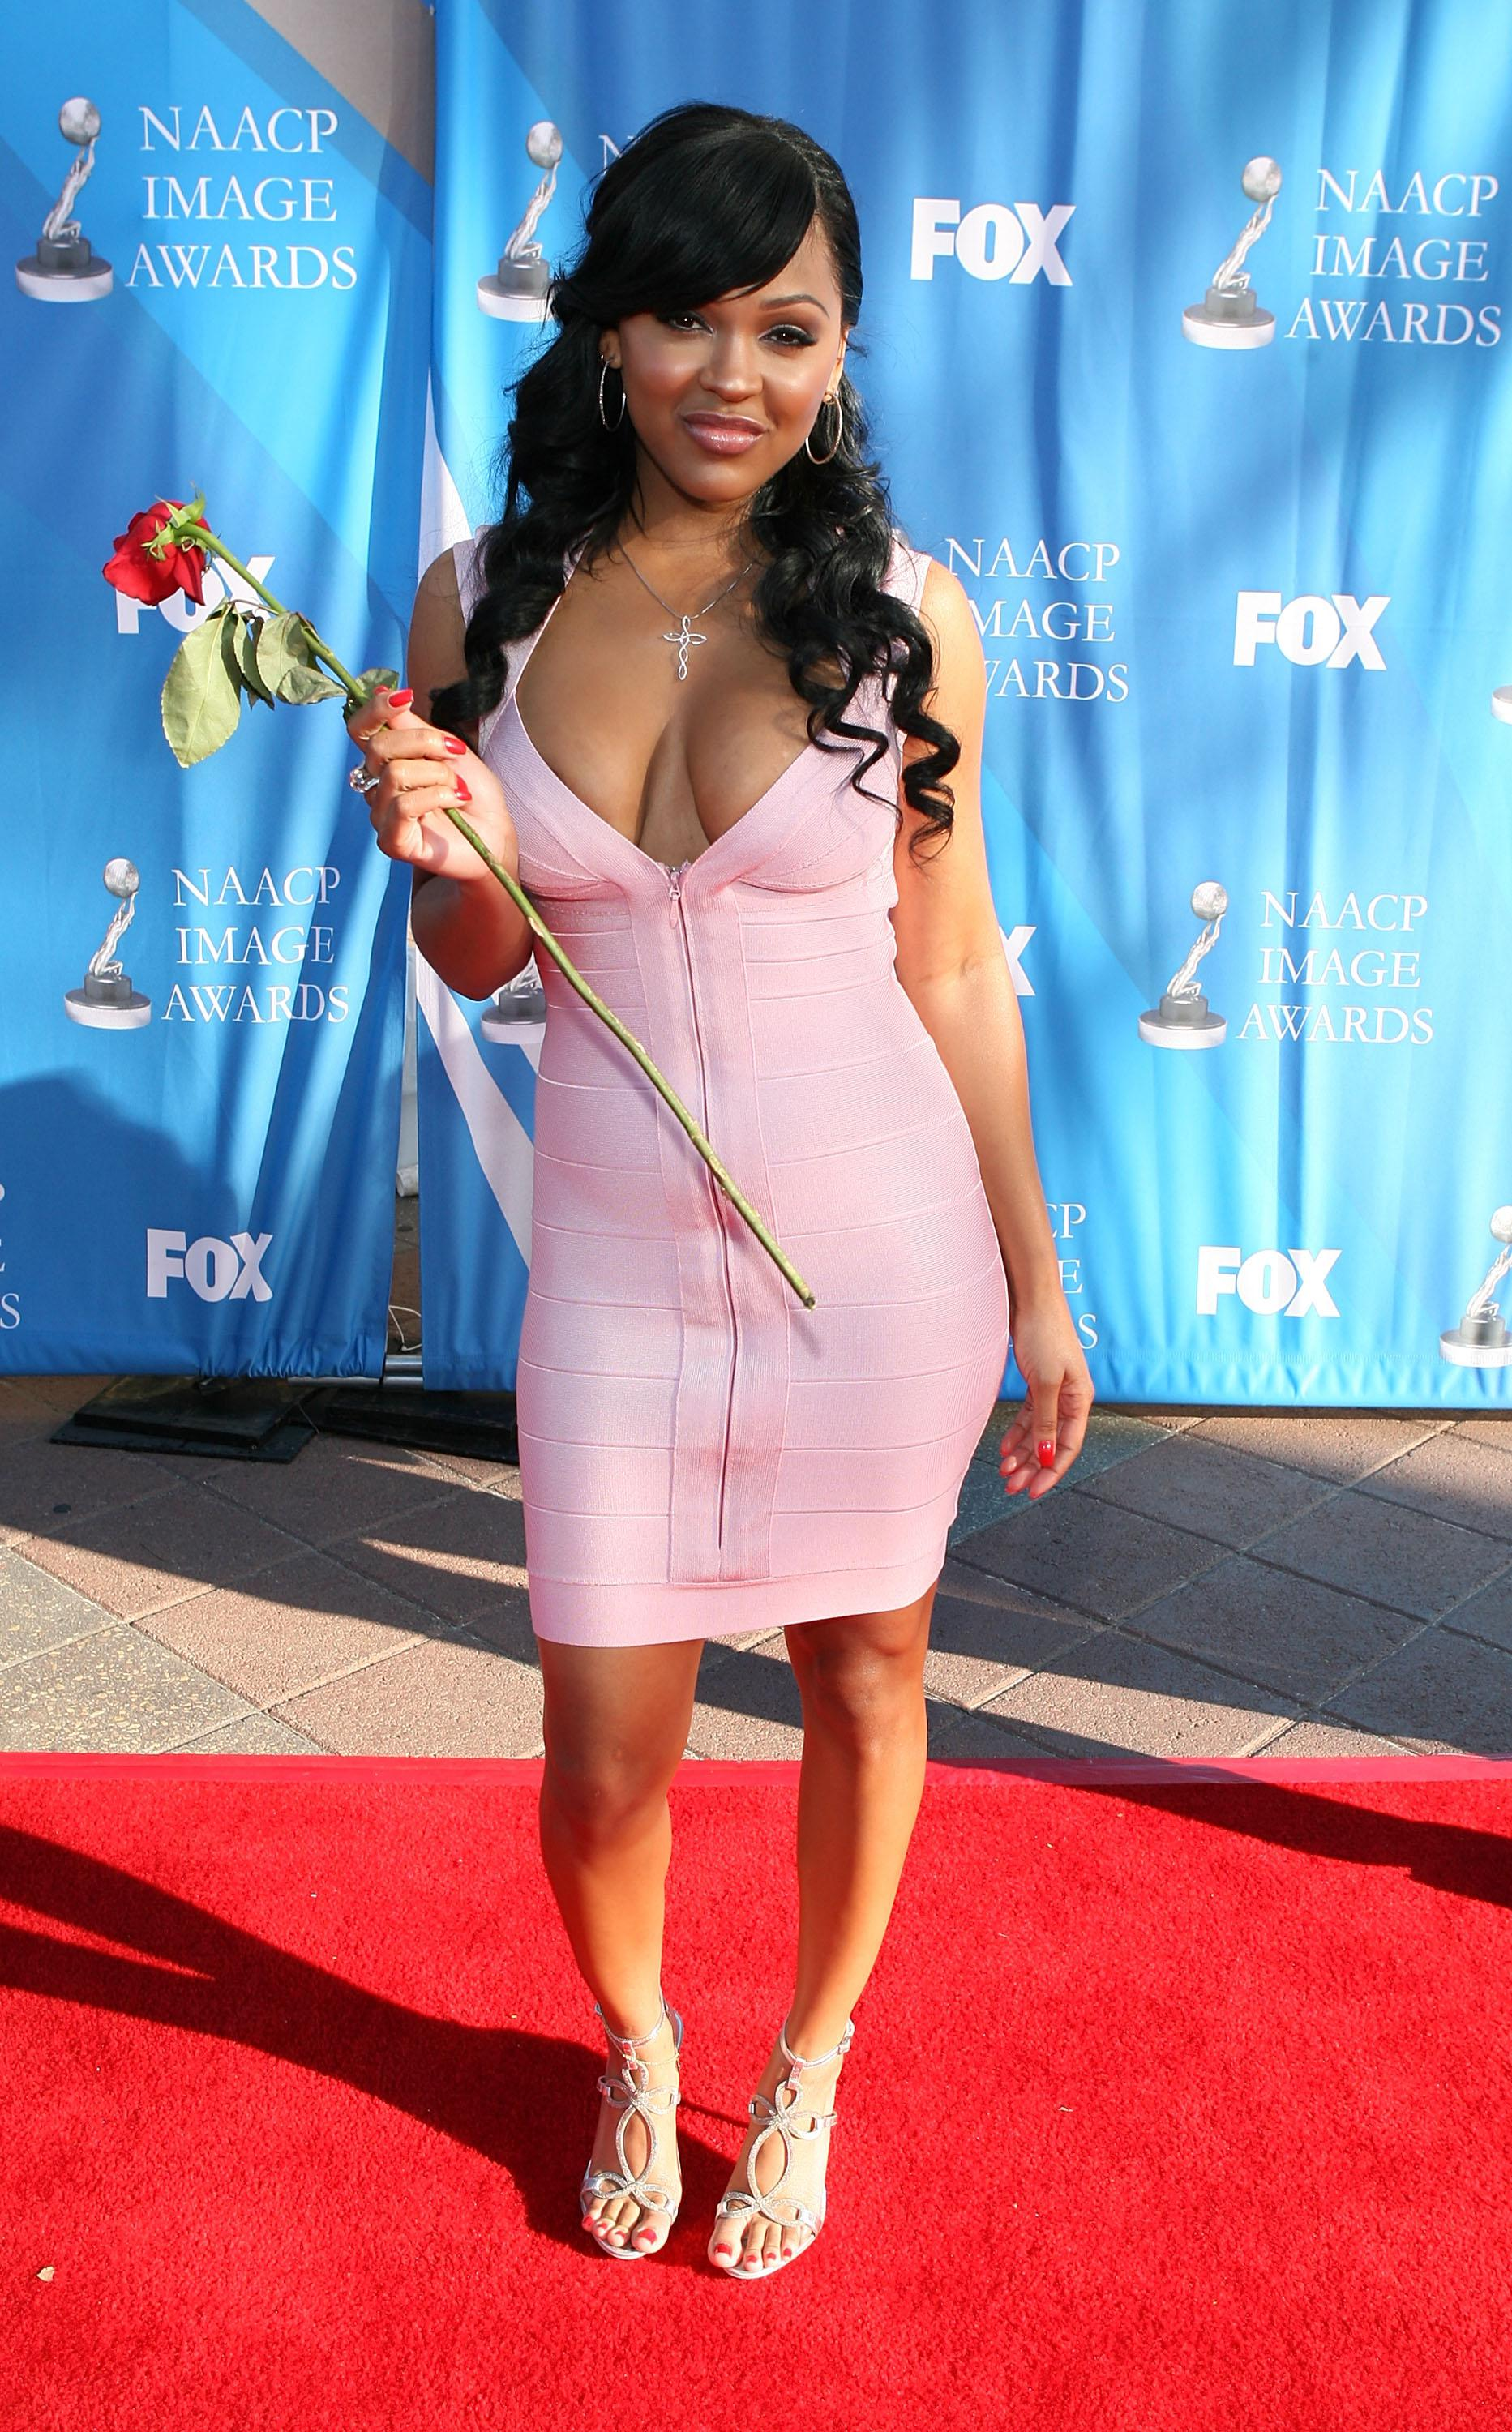 Sexy pictures of meagan good